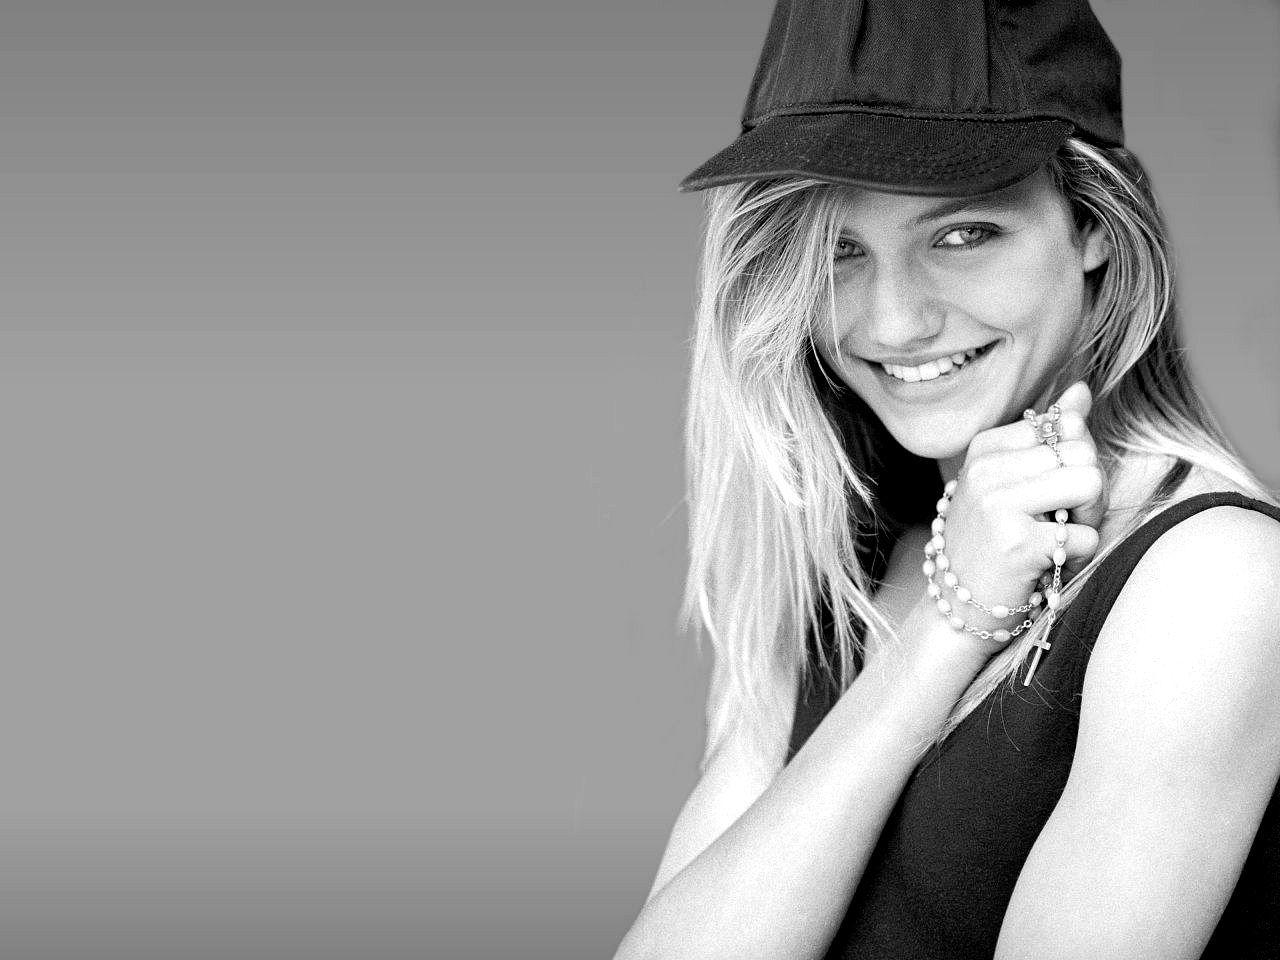 Hot-Cameron-Diaz-bikini-hd-cute-wallpapers